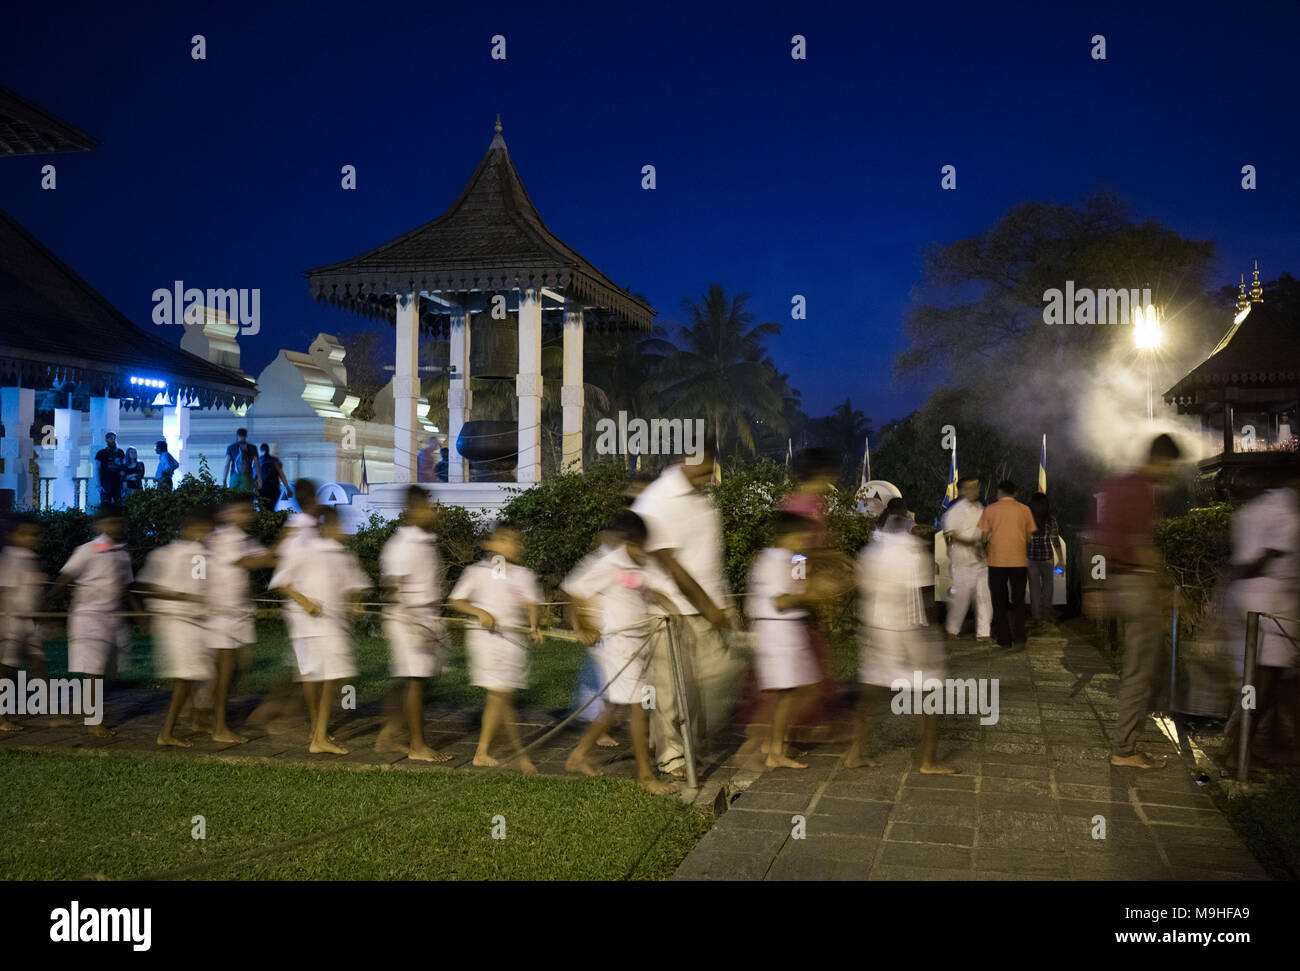 School students walking in a queue at Temple of the Tooth, Kandy, Sri Lanka, Asia. - Stock Image